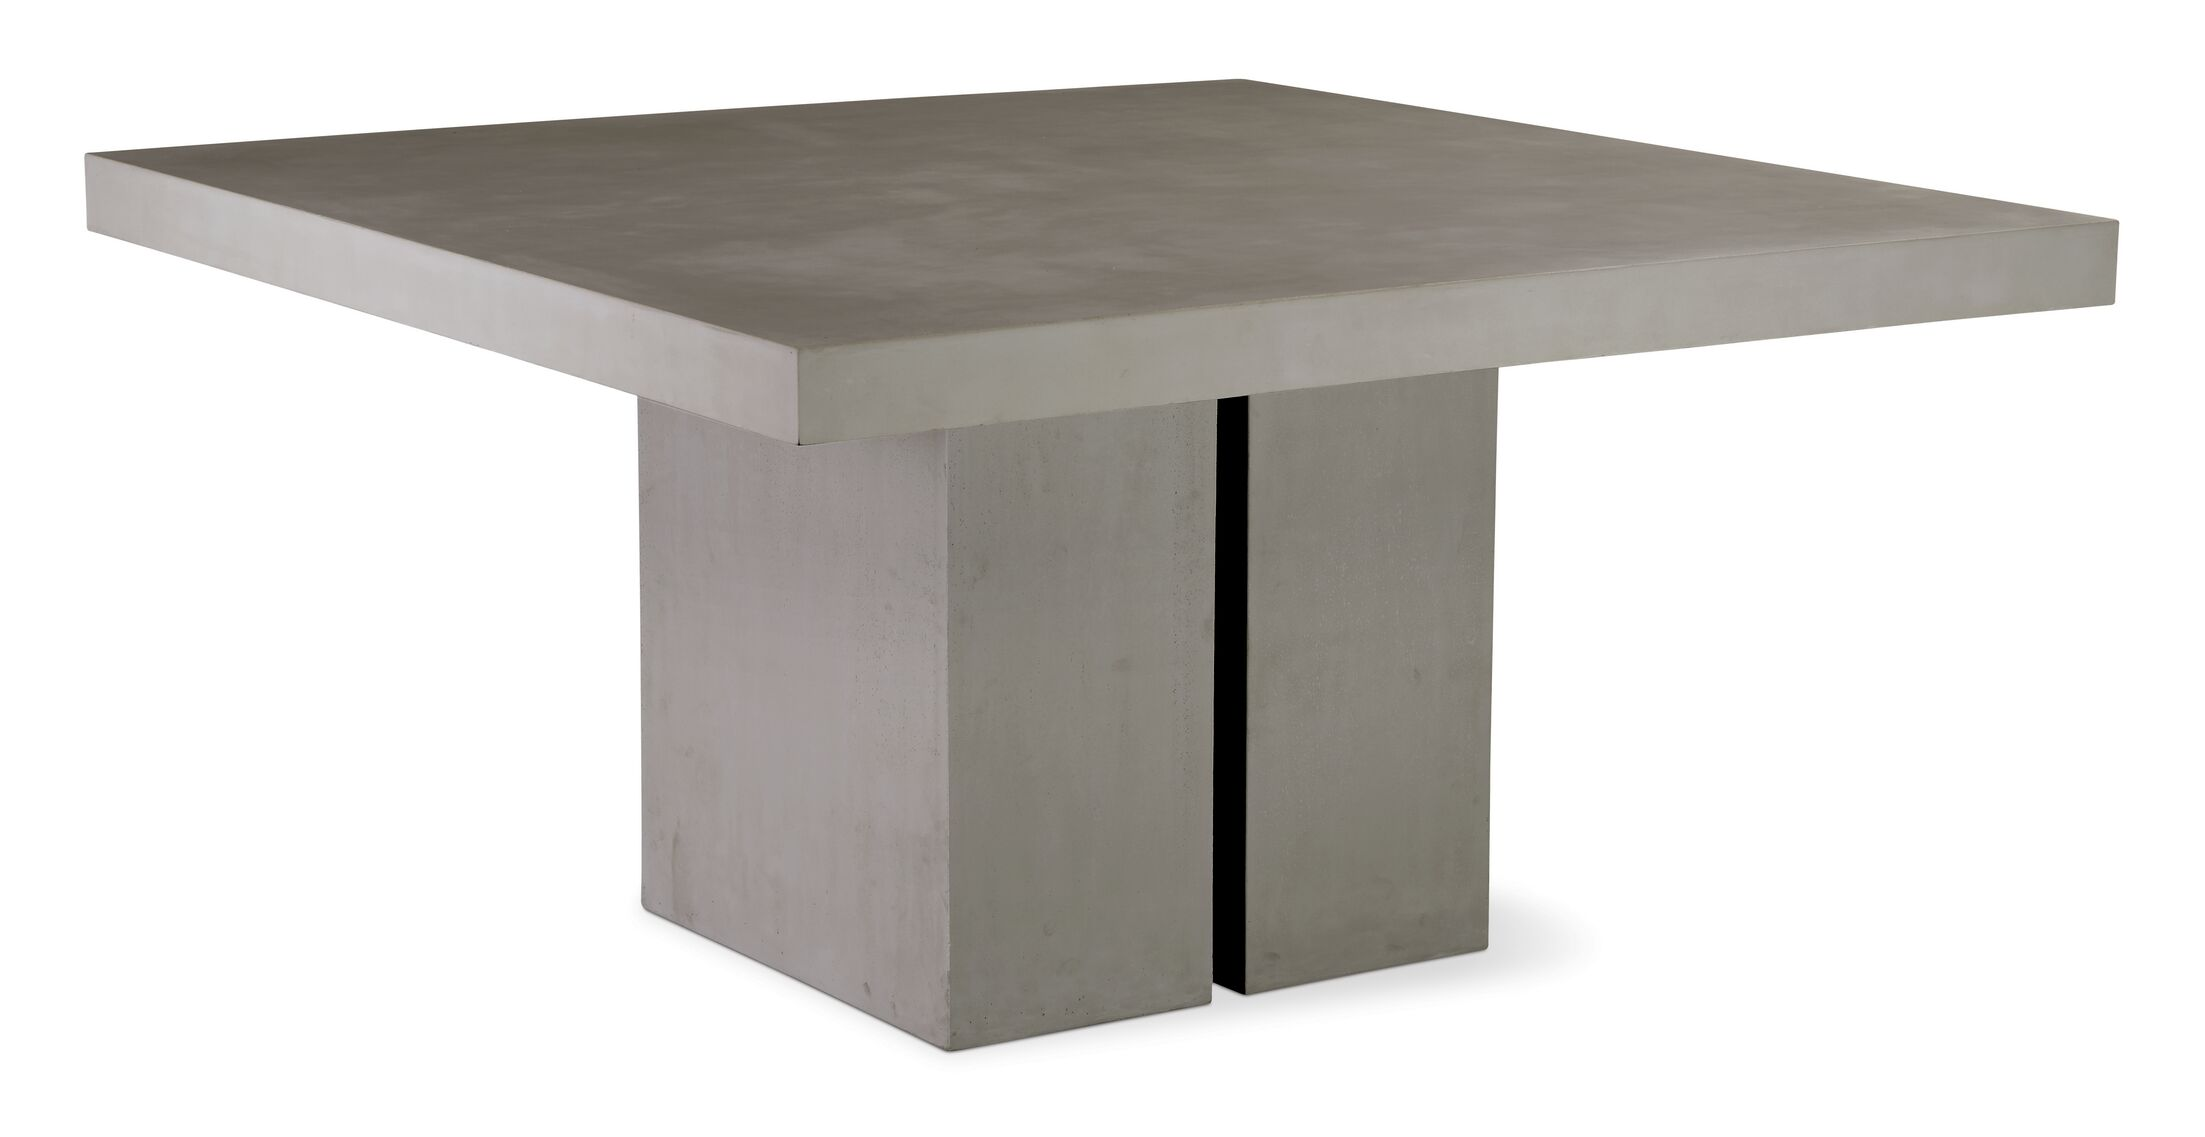 Perpetual Delapan Concrete Coffee Table Finish: Slate Gray